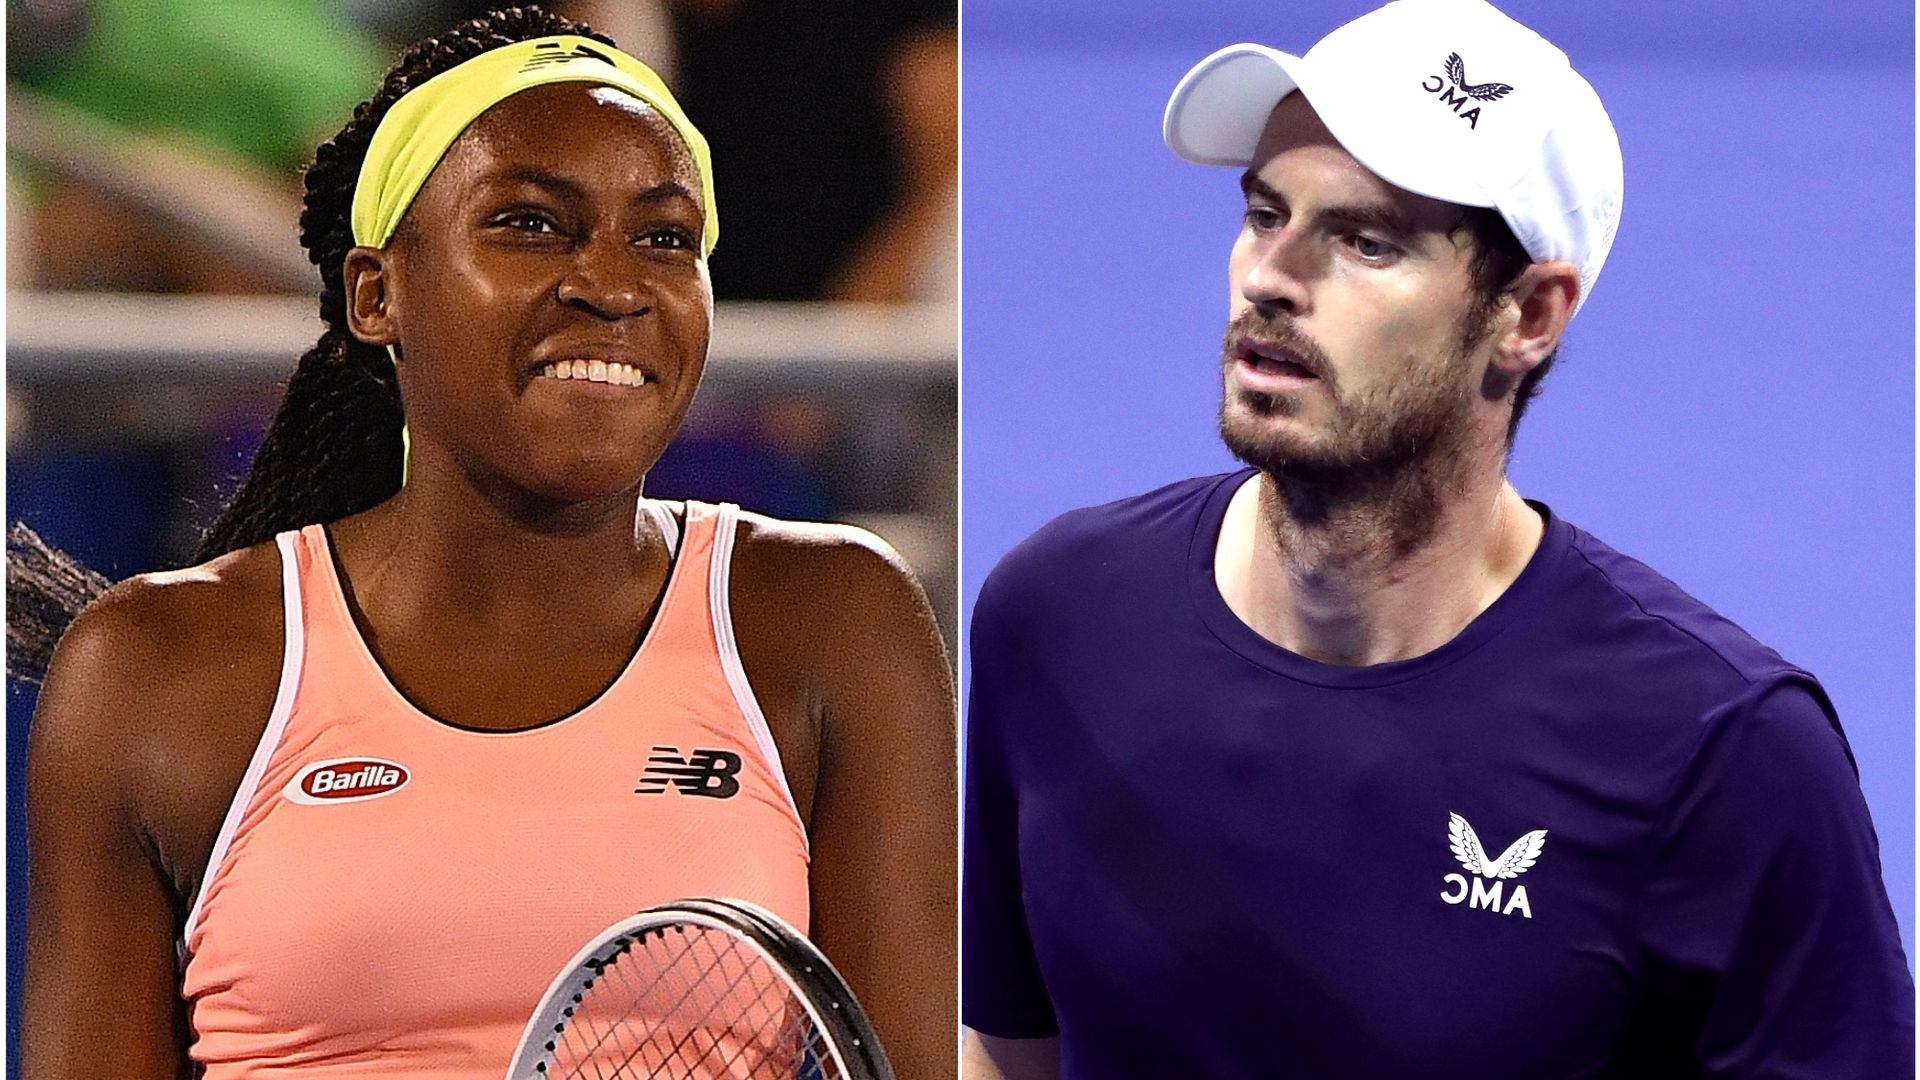 Gauff: Murray a 'great ally' for raising diversity issues